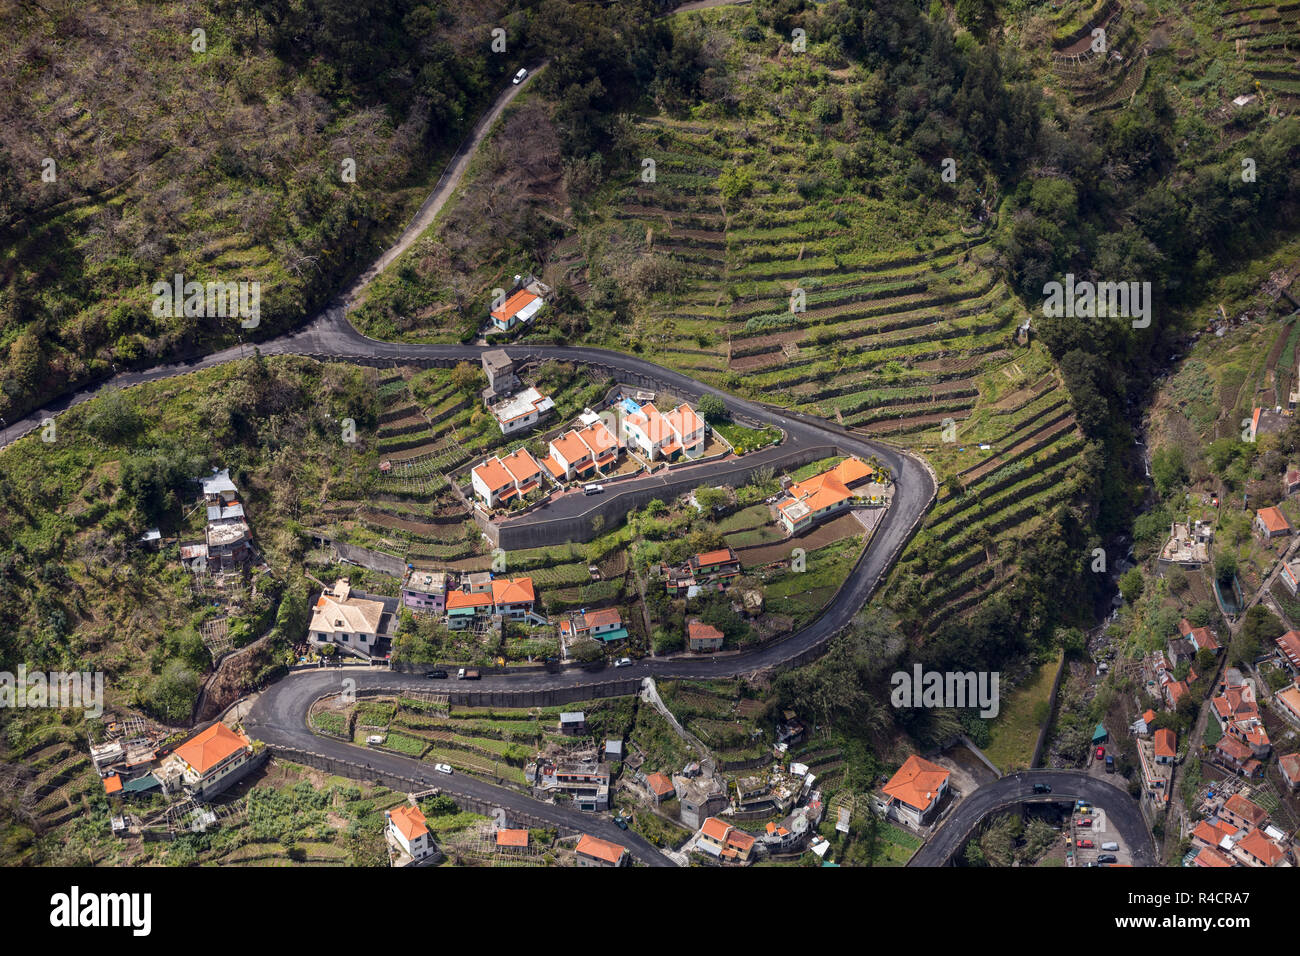 Valley of the Nuns, Curral das Freiras on Madeira Island, Portugal - Stock Image